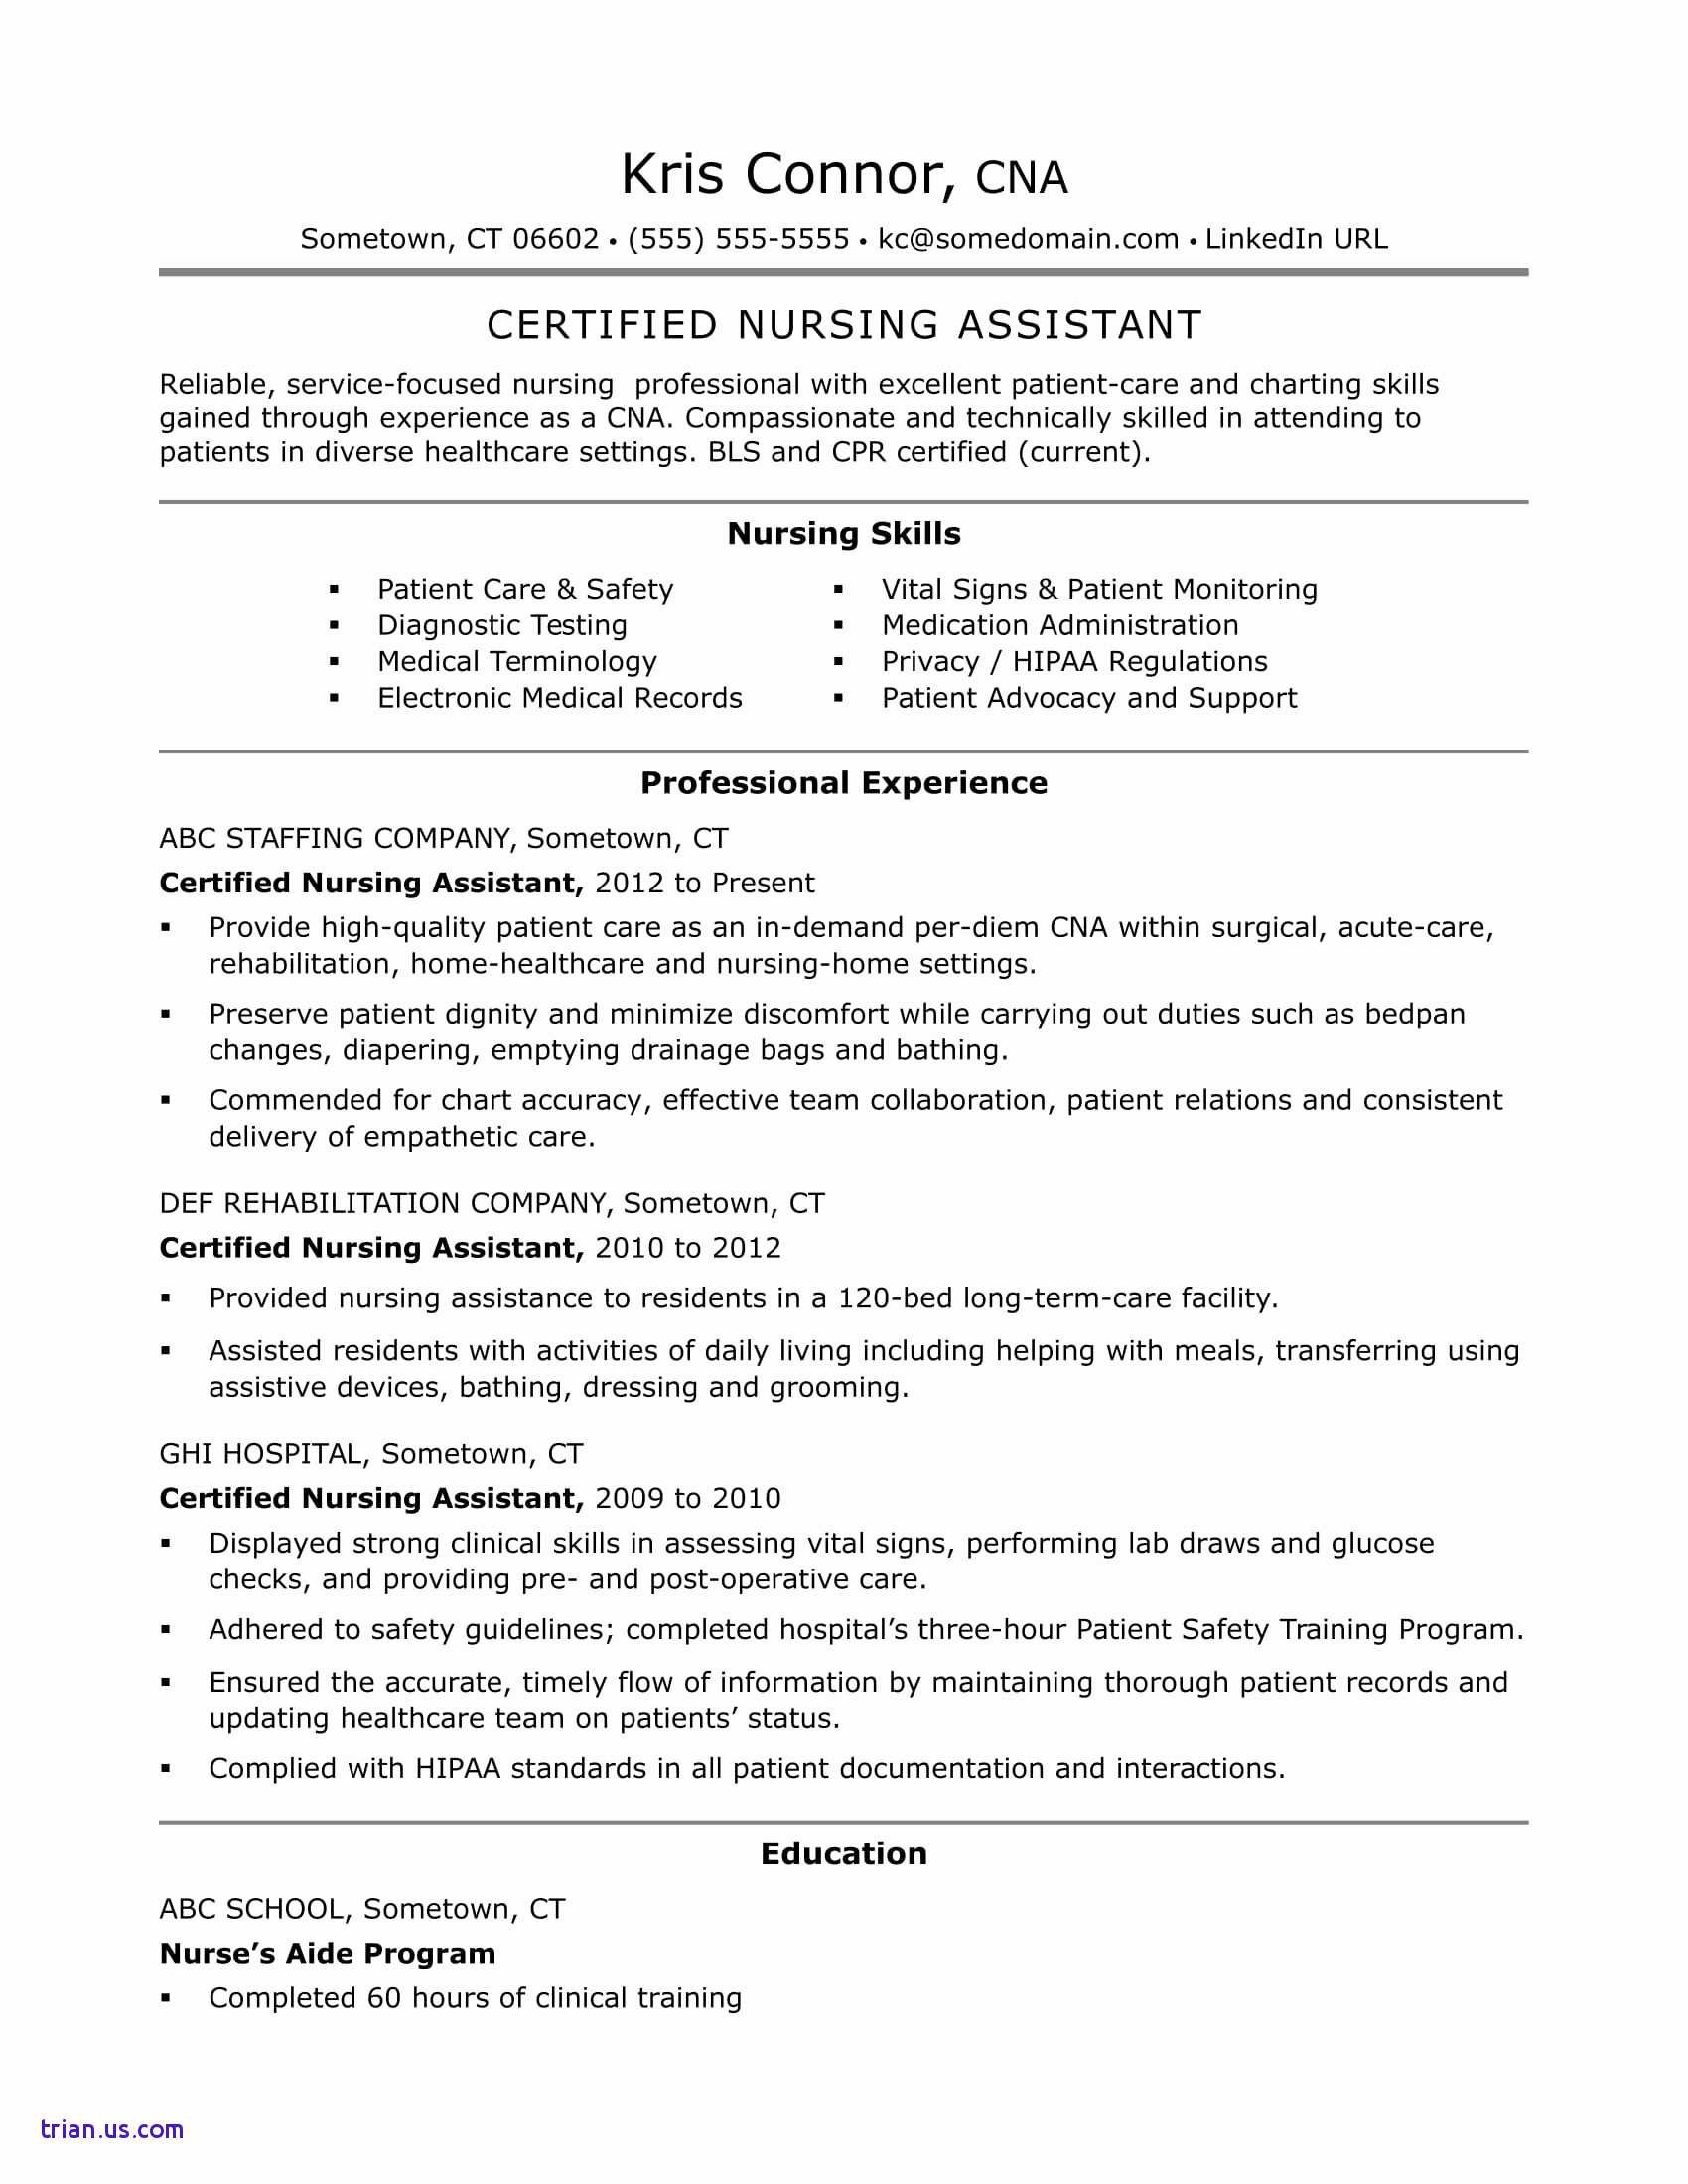 Nurse Aide Resume - Resume for Certified Nurse assistant – Cna Resume Examples Elegant